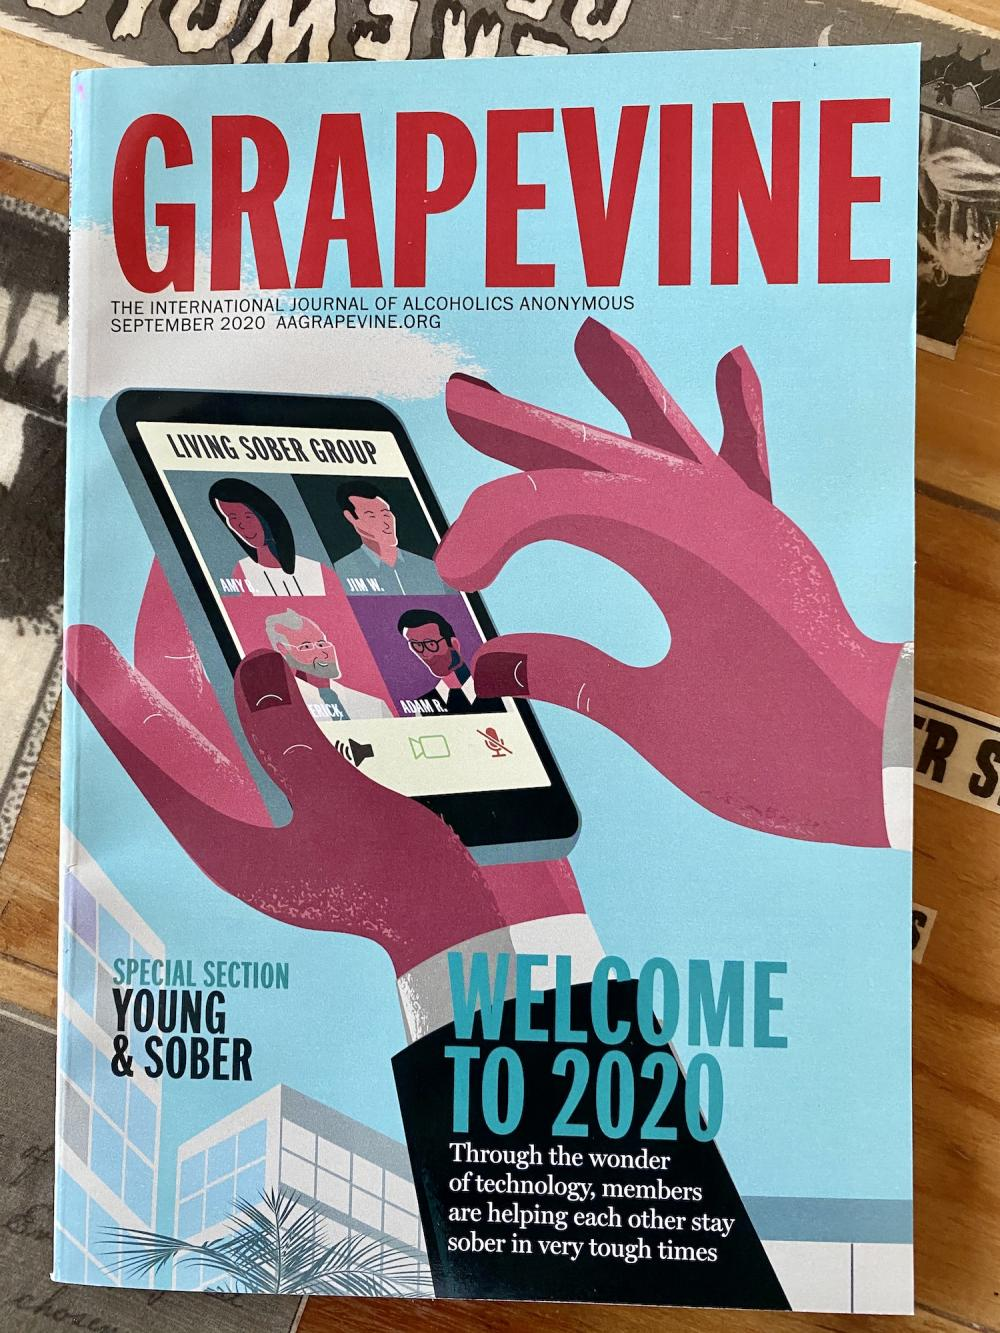 AA Grapevine September 2020 issue